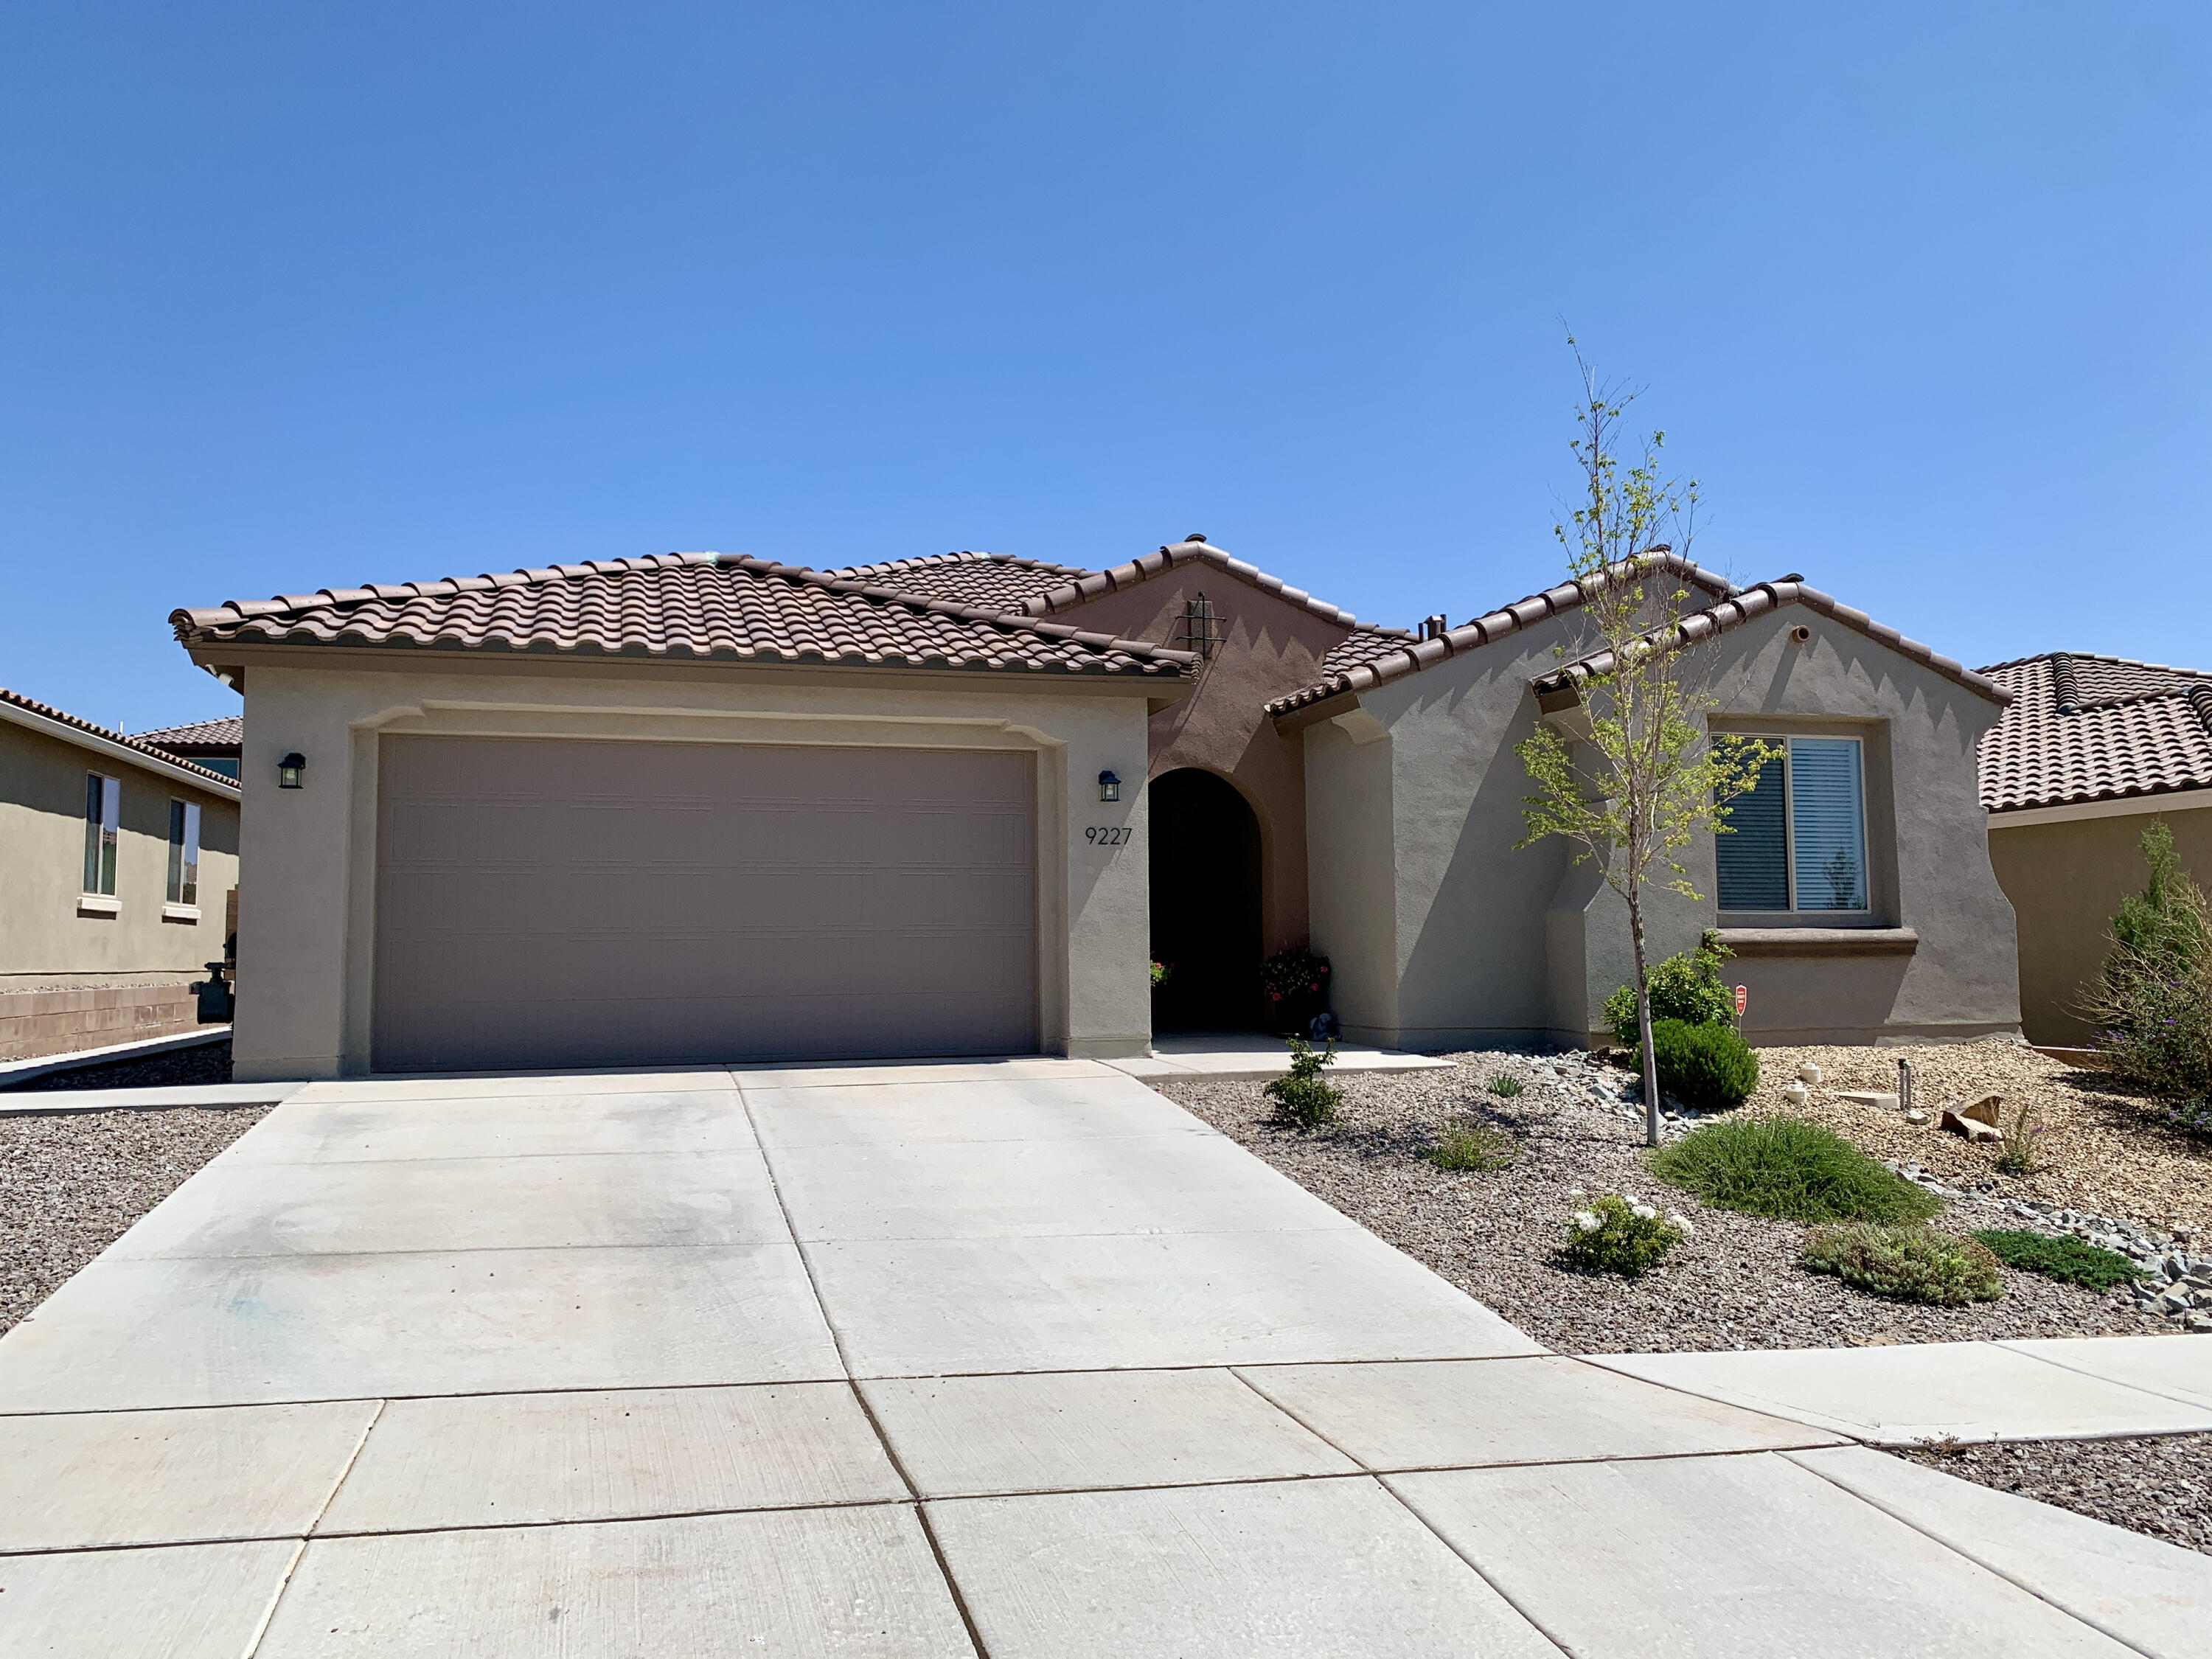 This gorgeous Pulte Parklane home was built in 2018 in the thriving Mirehaven community and is full of upgrades! The home features 3 bedrooms with walk-in closets, 3.5 baths, an office and a cafe. In addition, the home has a beautiful guest suite which includes a private full bathroom and walk-in closet. The home also features an upgraded master shower, upgraded cabinets, granite countertops, and upgraded flooring throughout. The kitchen was also upgraded to a chefs kitchen with stainless steel appliances, a custom backsplash and farmhouse sink. The backyard is complete with 2 additional slabs of concrete, perfect for entertaining!  The community also includes walking trails with beautiful views, two parks, and a K-8 community collaborative school within walking distance!